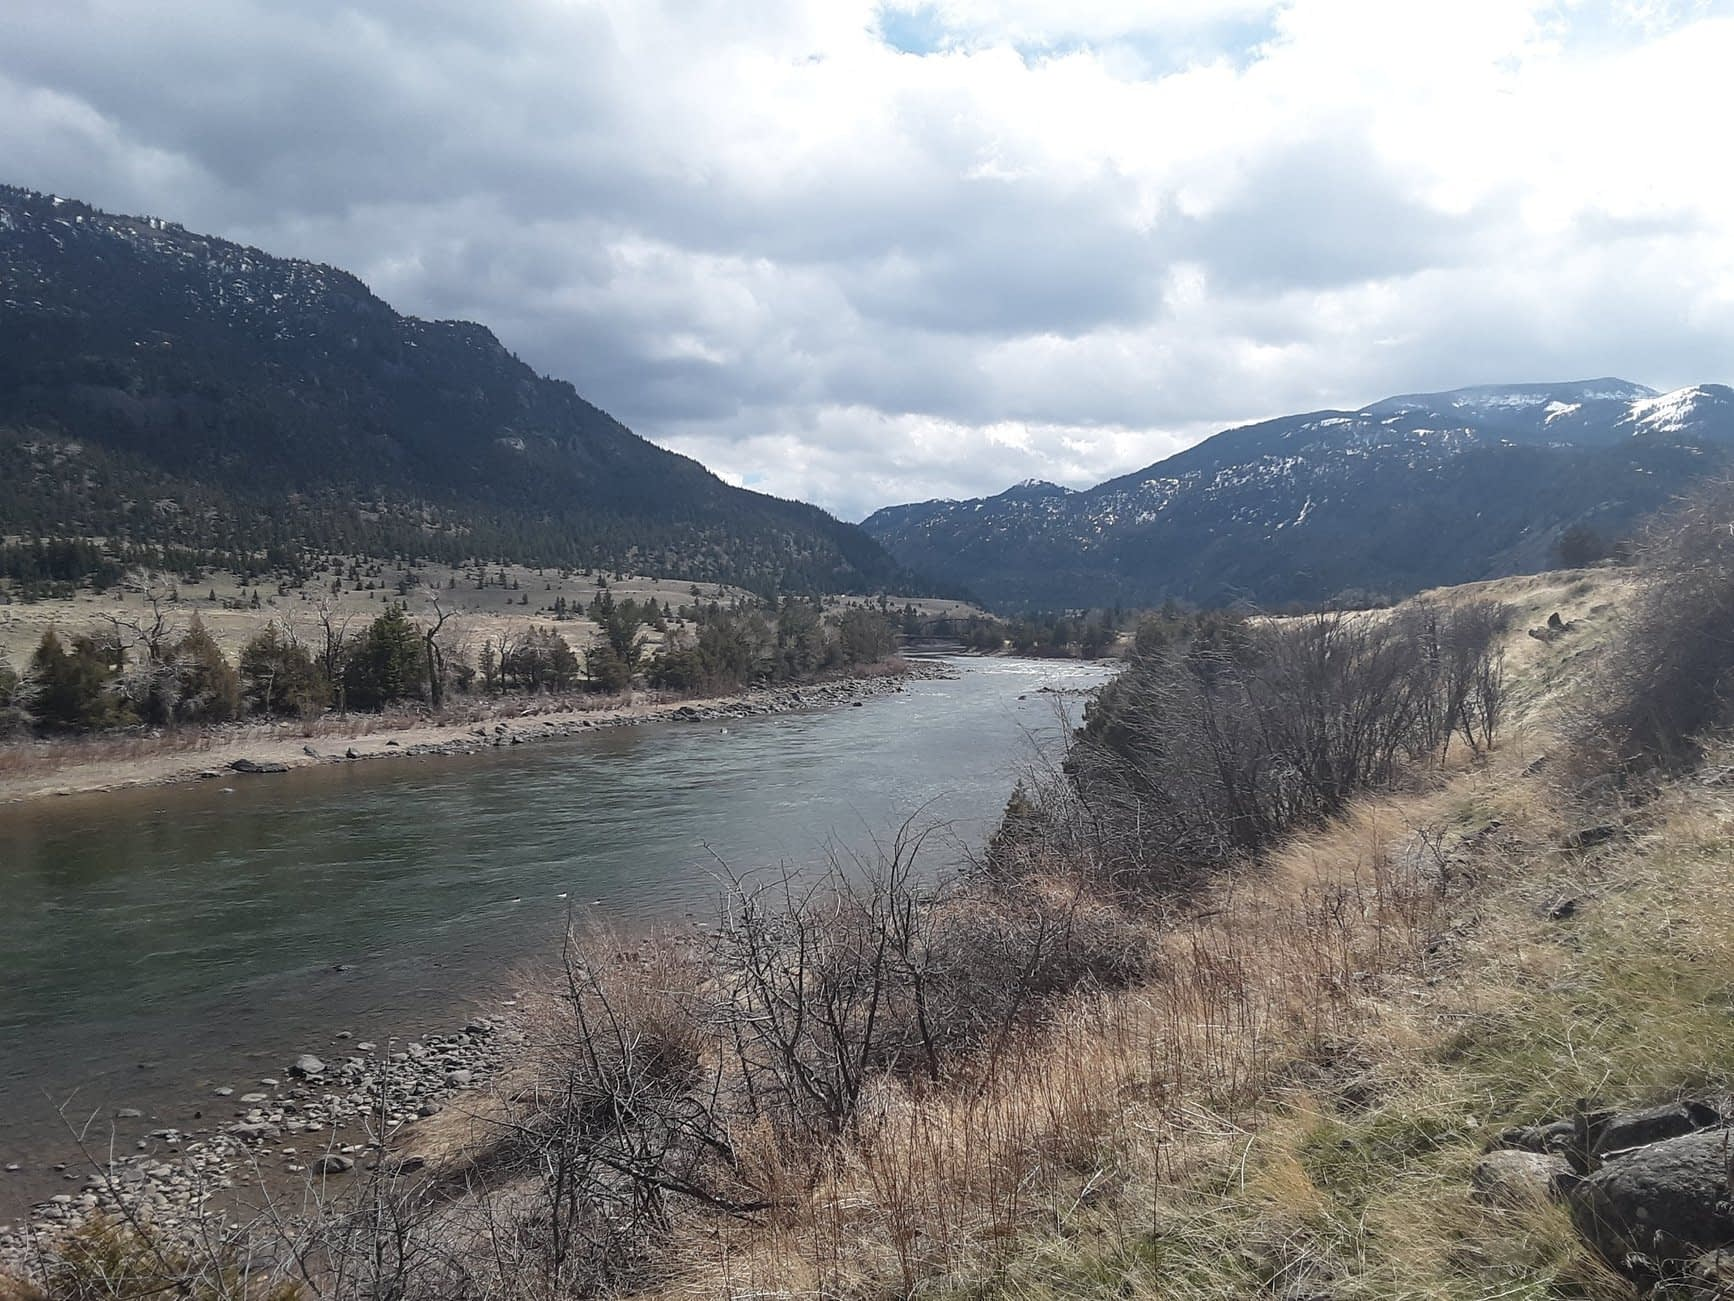 , Monitoring Yellowstone's Watersheds to Create Sustainable Ecosystems and Forecast Environmental Changes | Onset Data Loggers, TheCircularEconomy.com